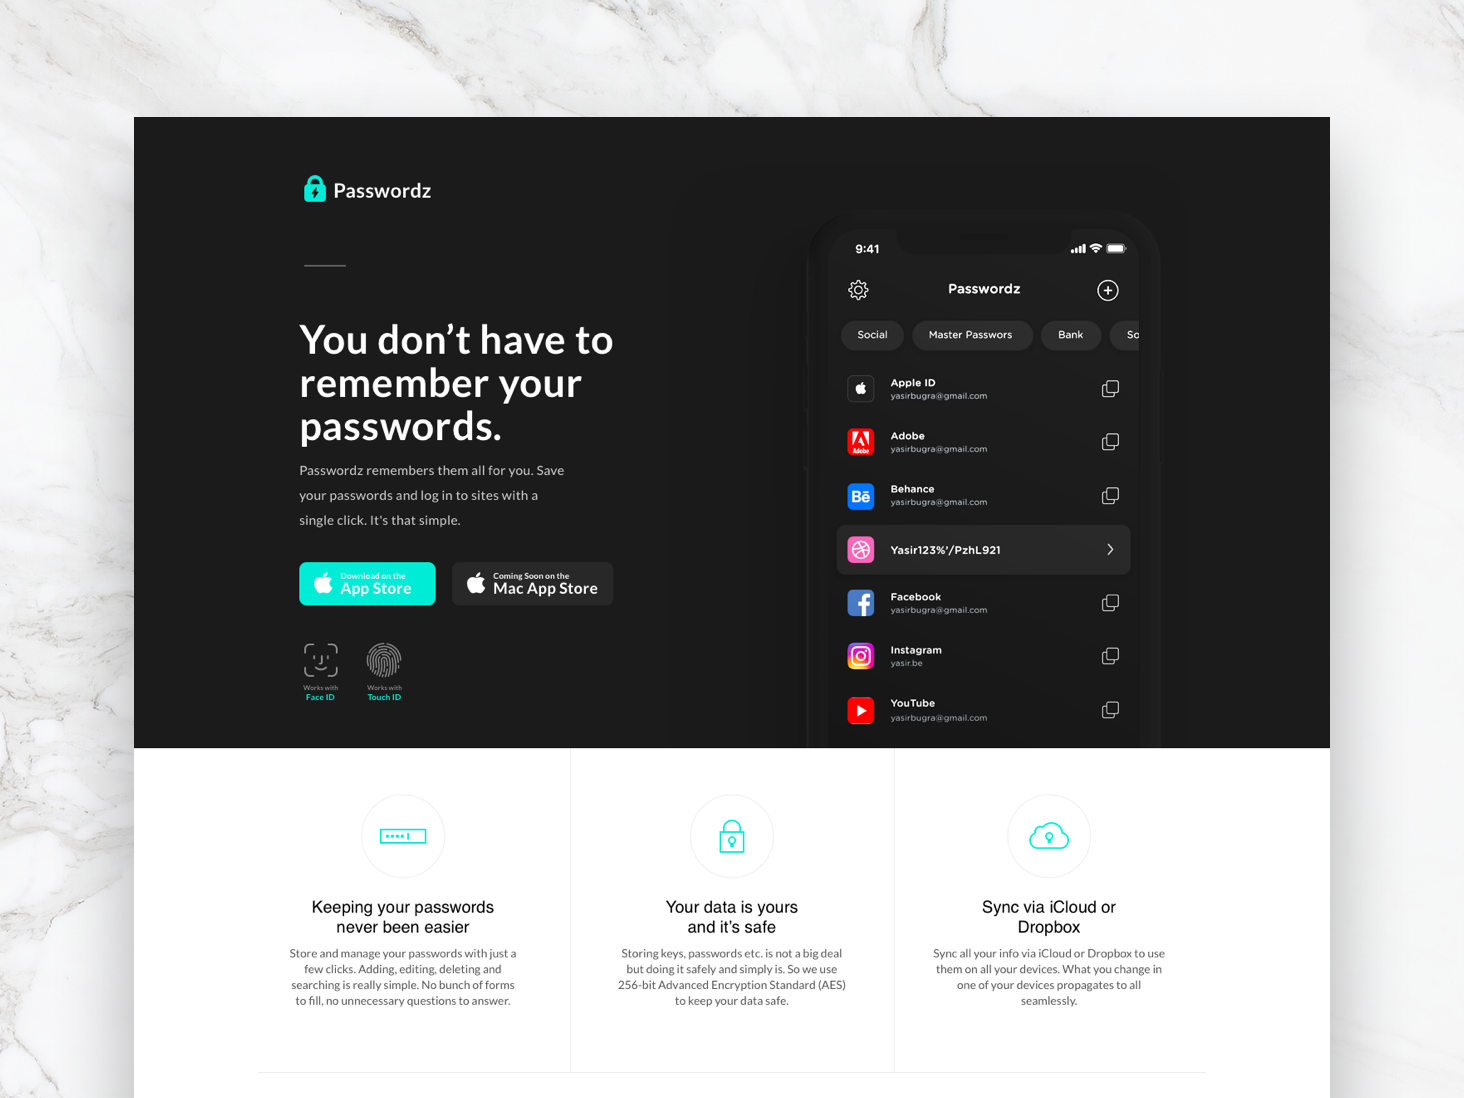 Passwordz website